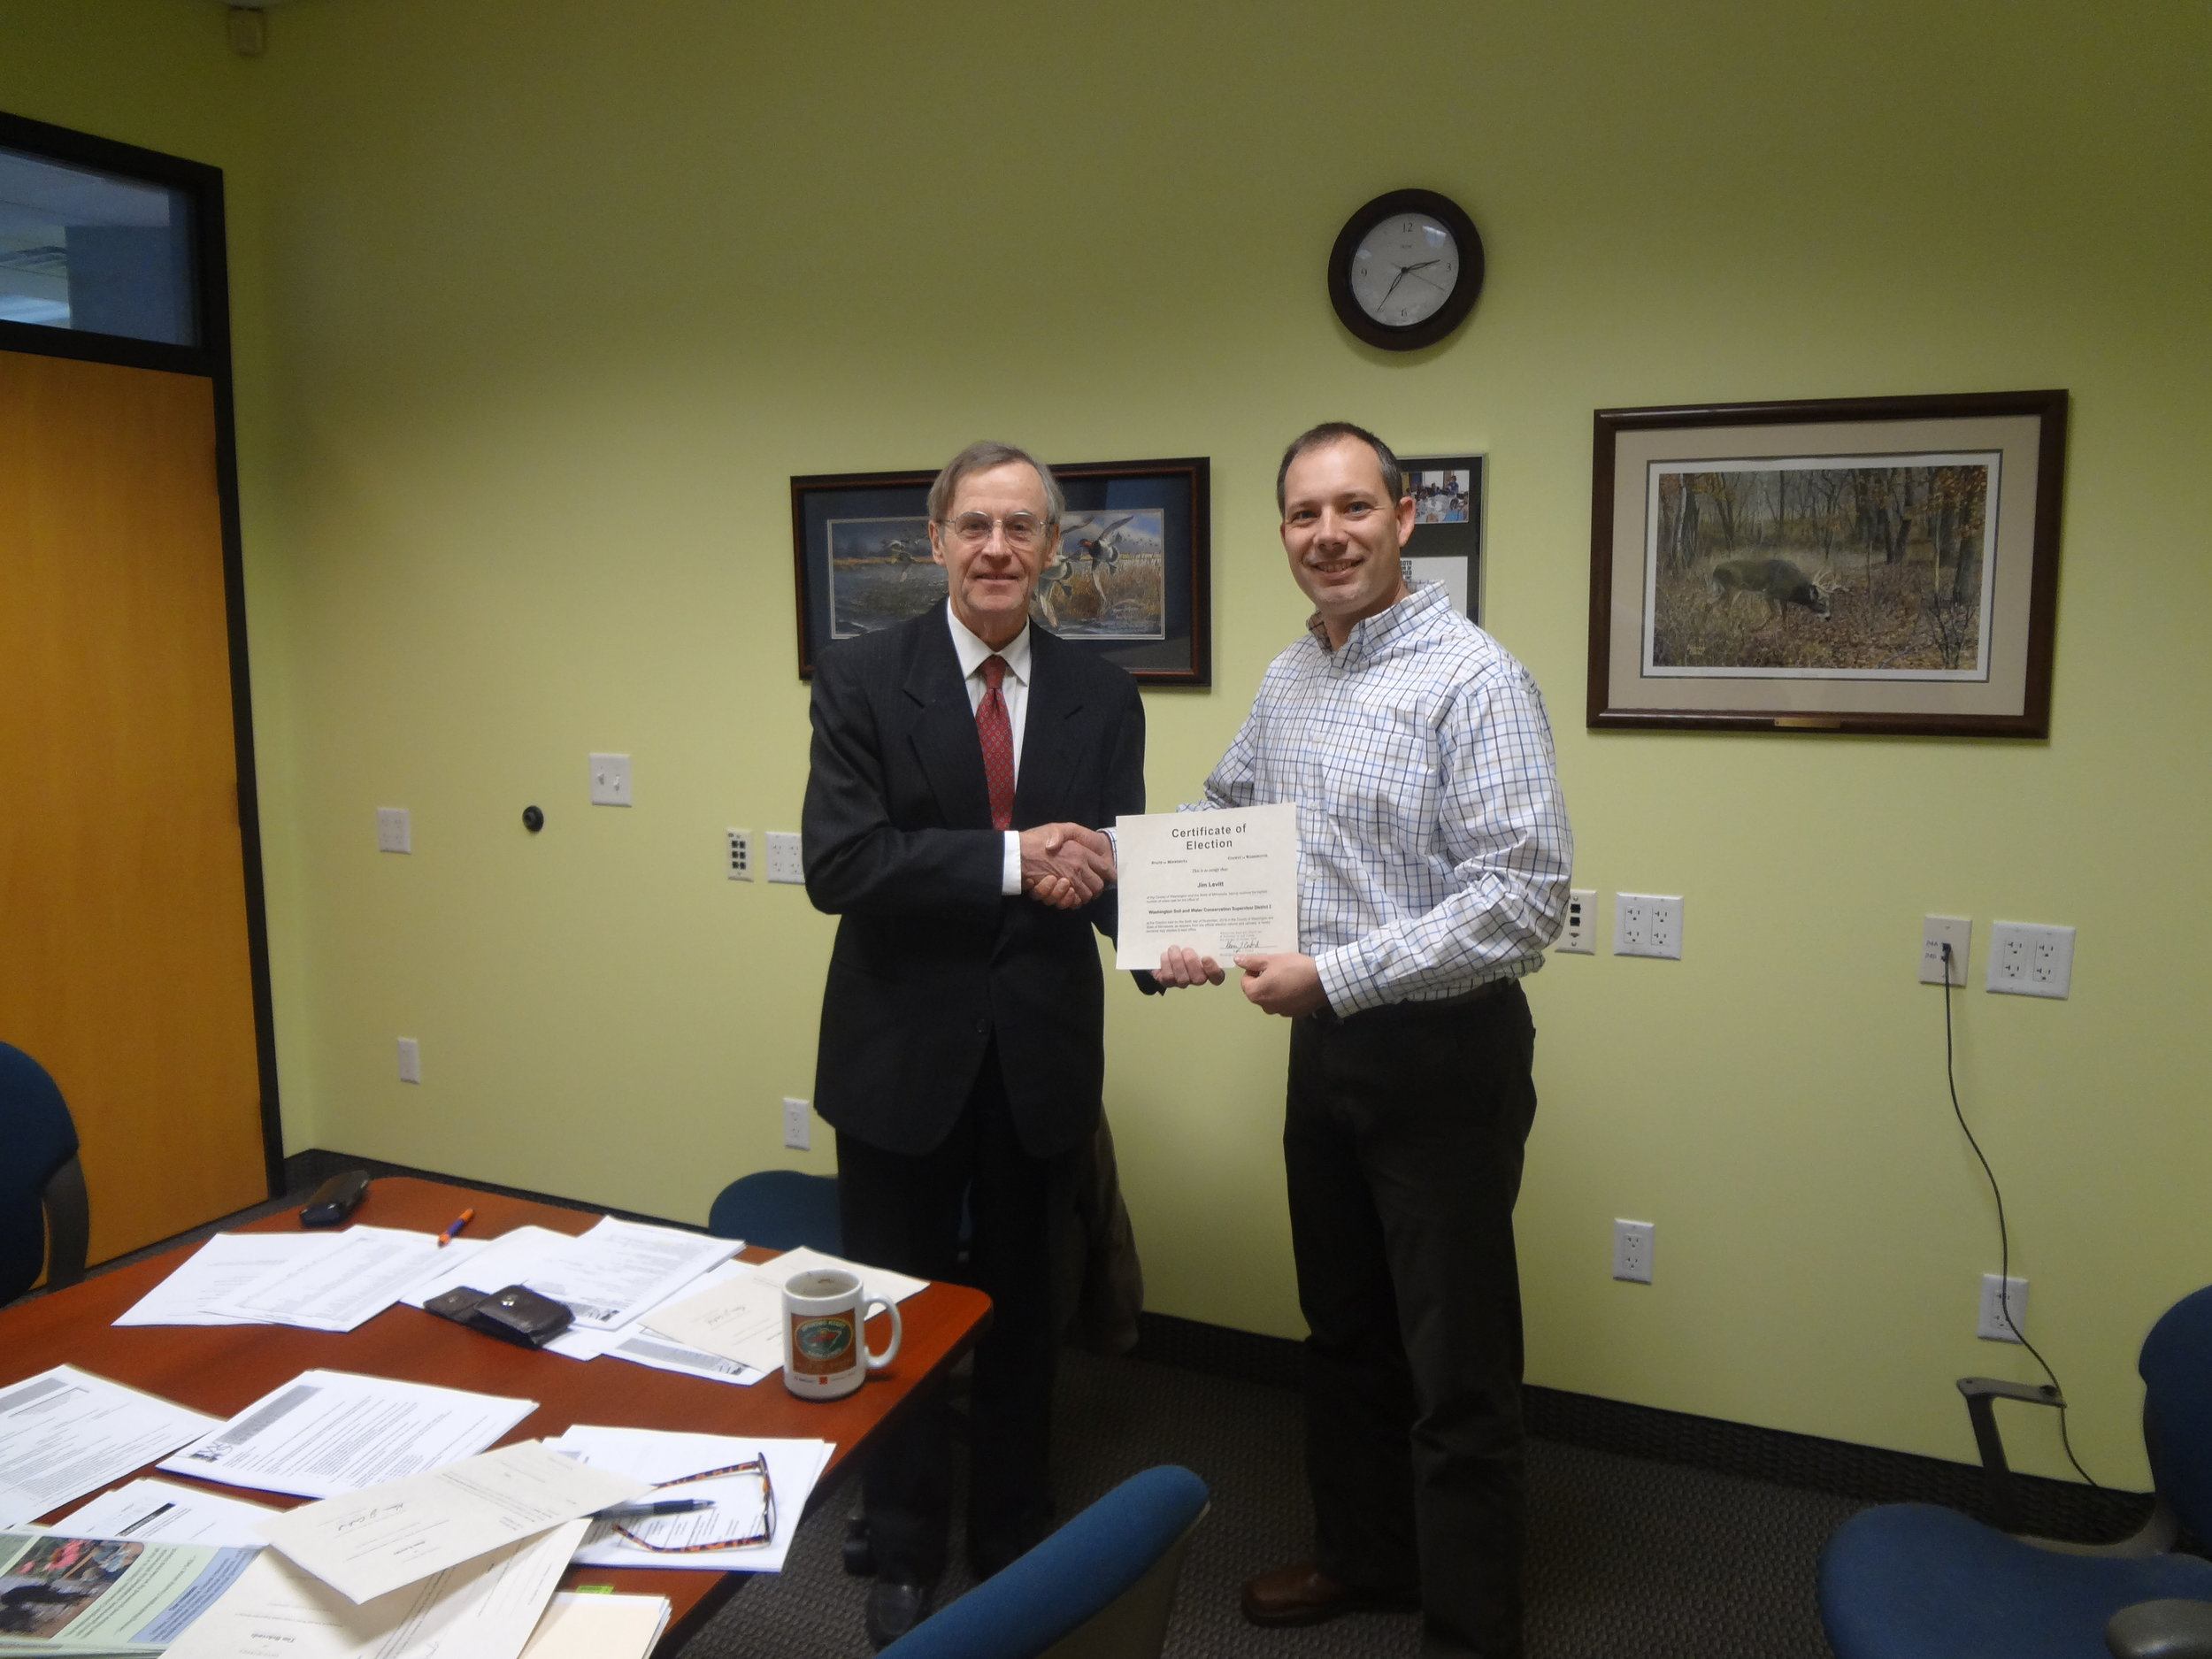 John Rheinberger is swearing in Jim Levitt after his re-election to the WCD Board this past fall.